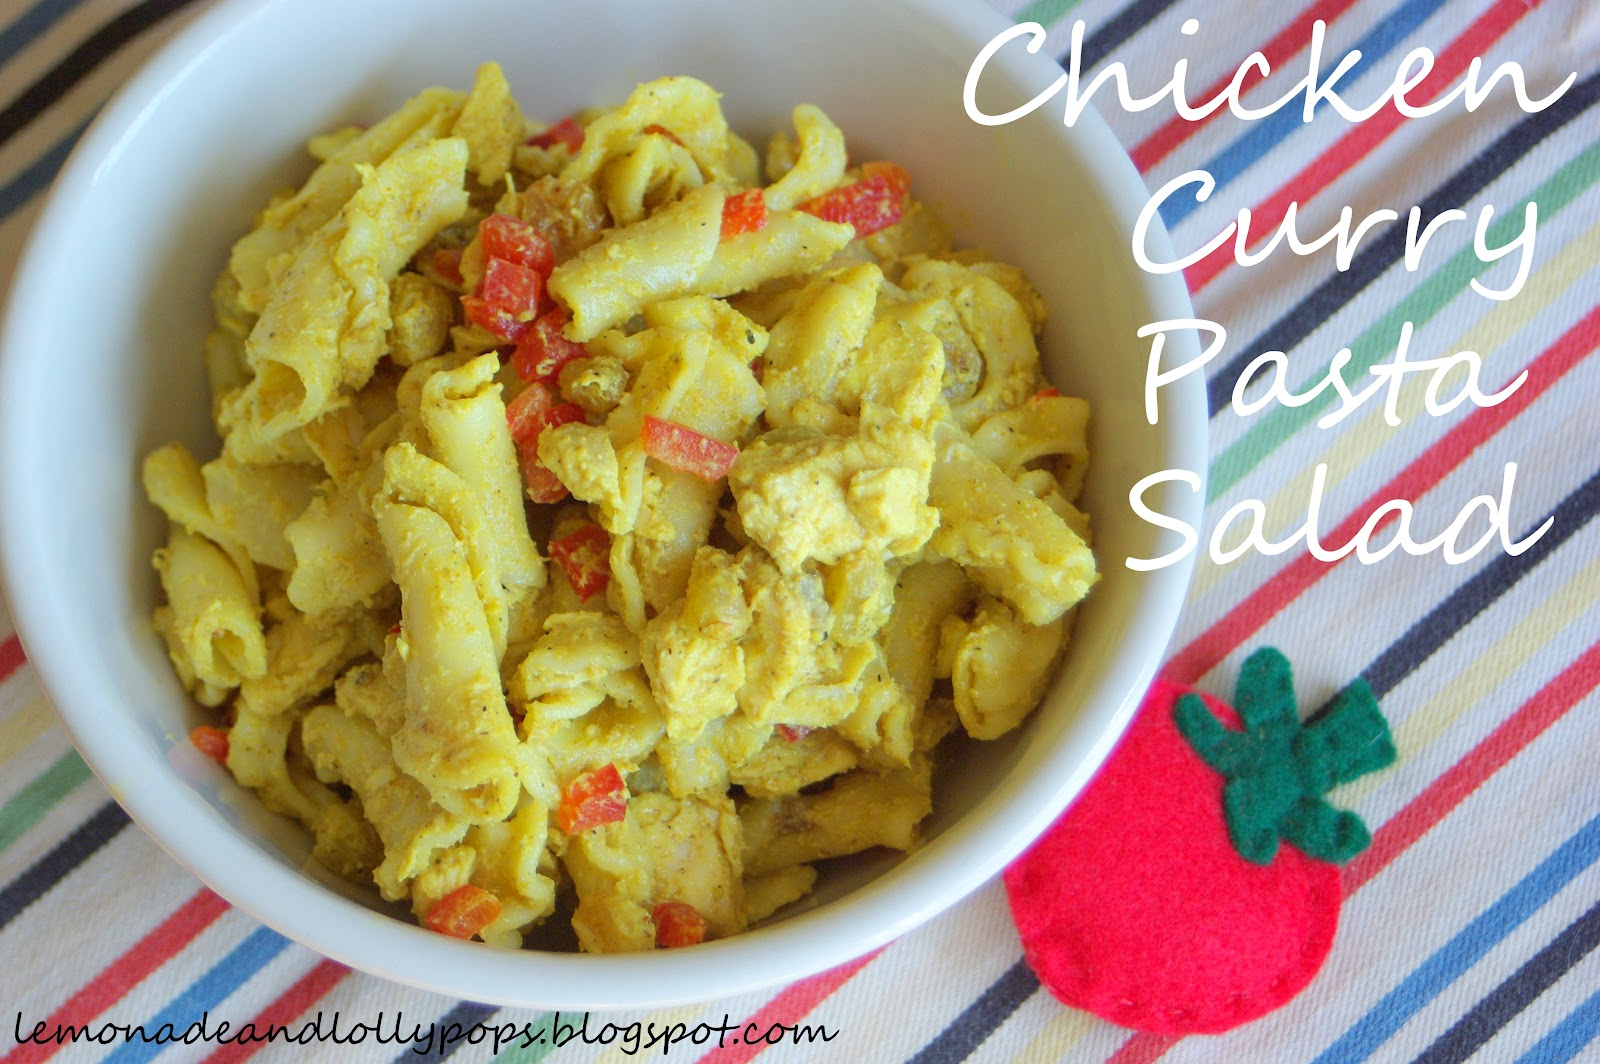 Lemonade and Lollypops: Chicken Curry Pasta Salad